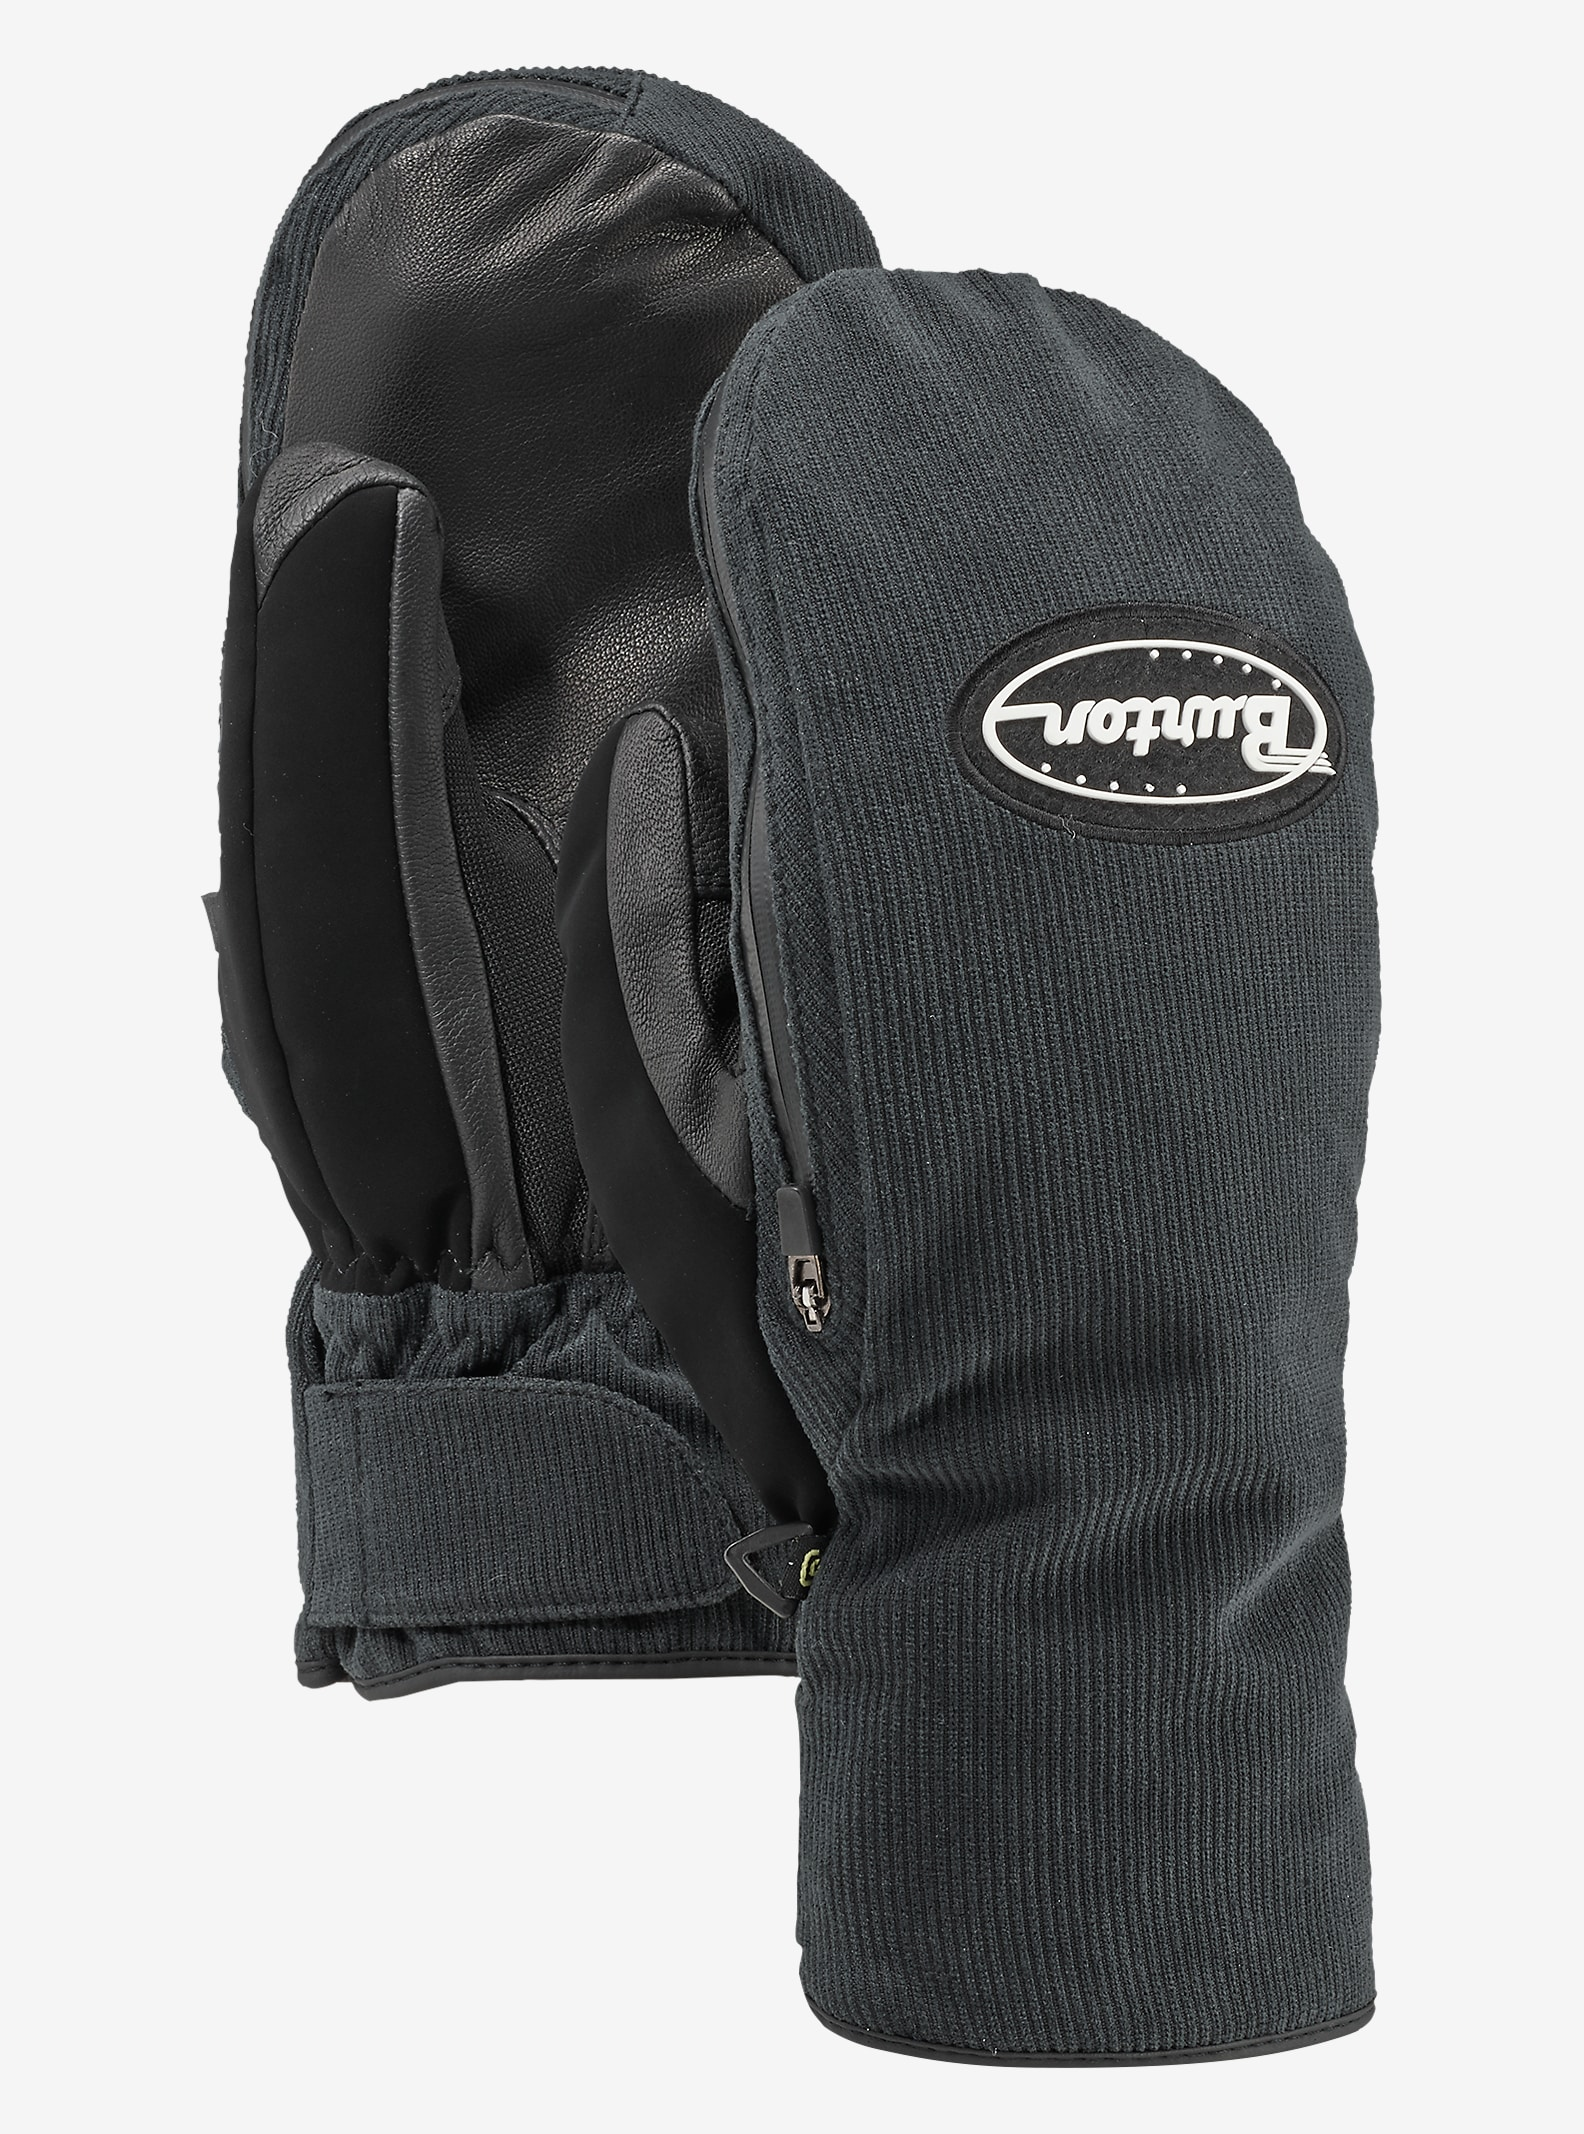 Burton Hi-Five Mitt shown in True Black Cord